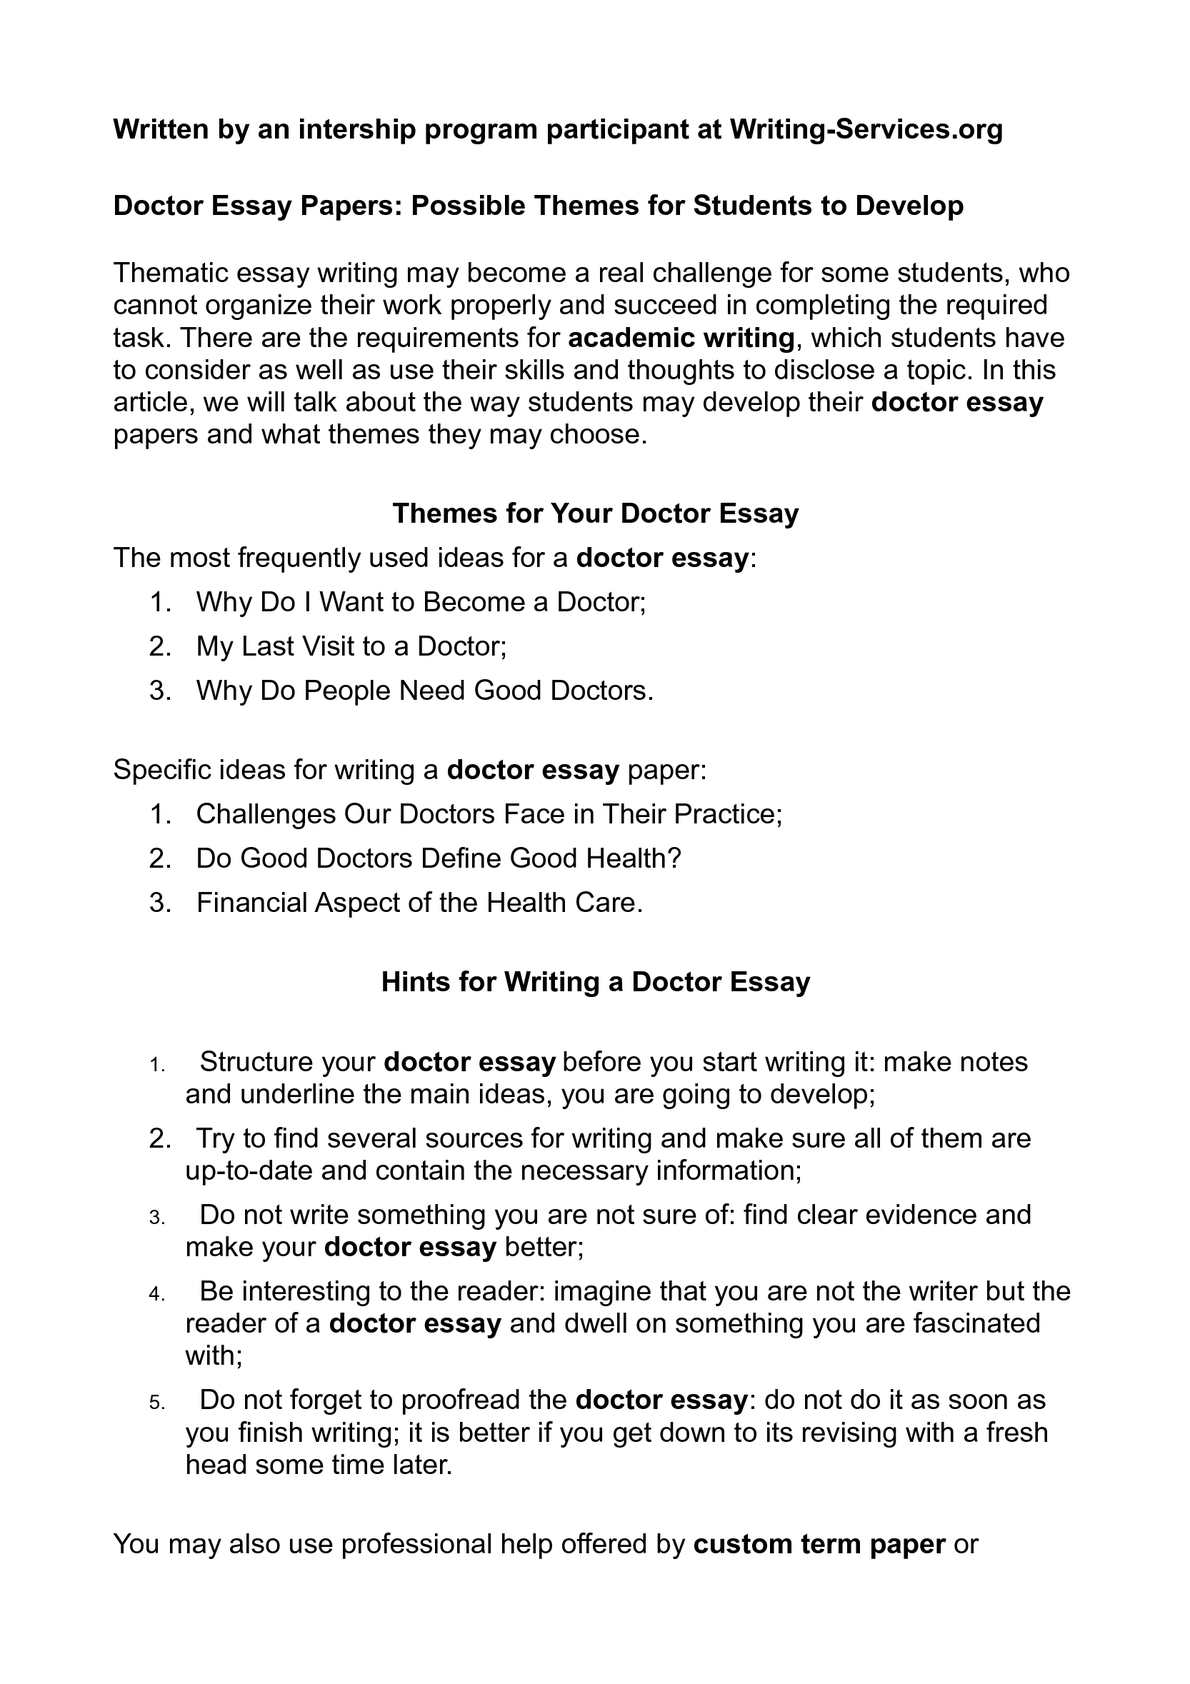 Conscience Essay  Write My Essay Paper also Essays For High School Students To Read Calamo  Doctor Essay Papers Possible Themes For Students  Short Essays In English